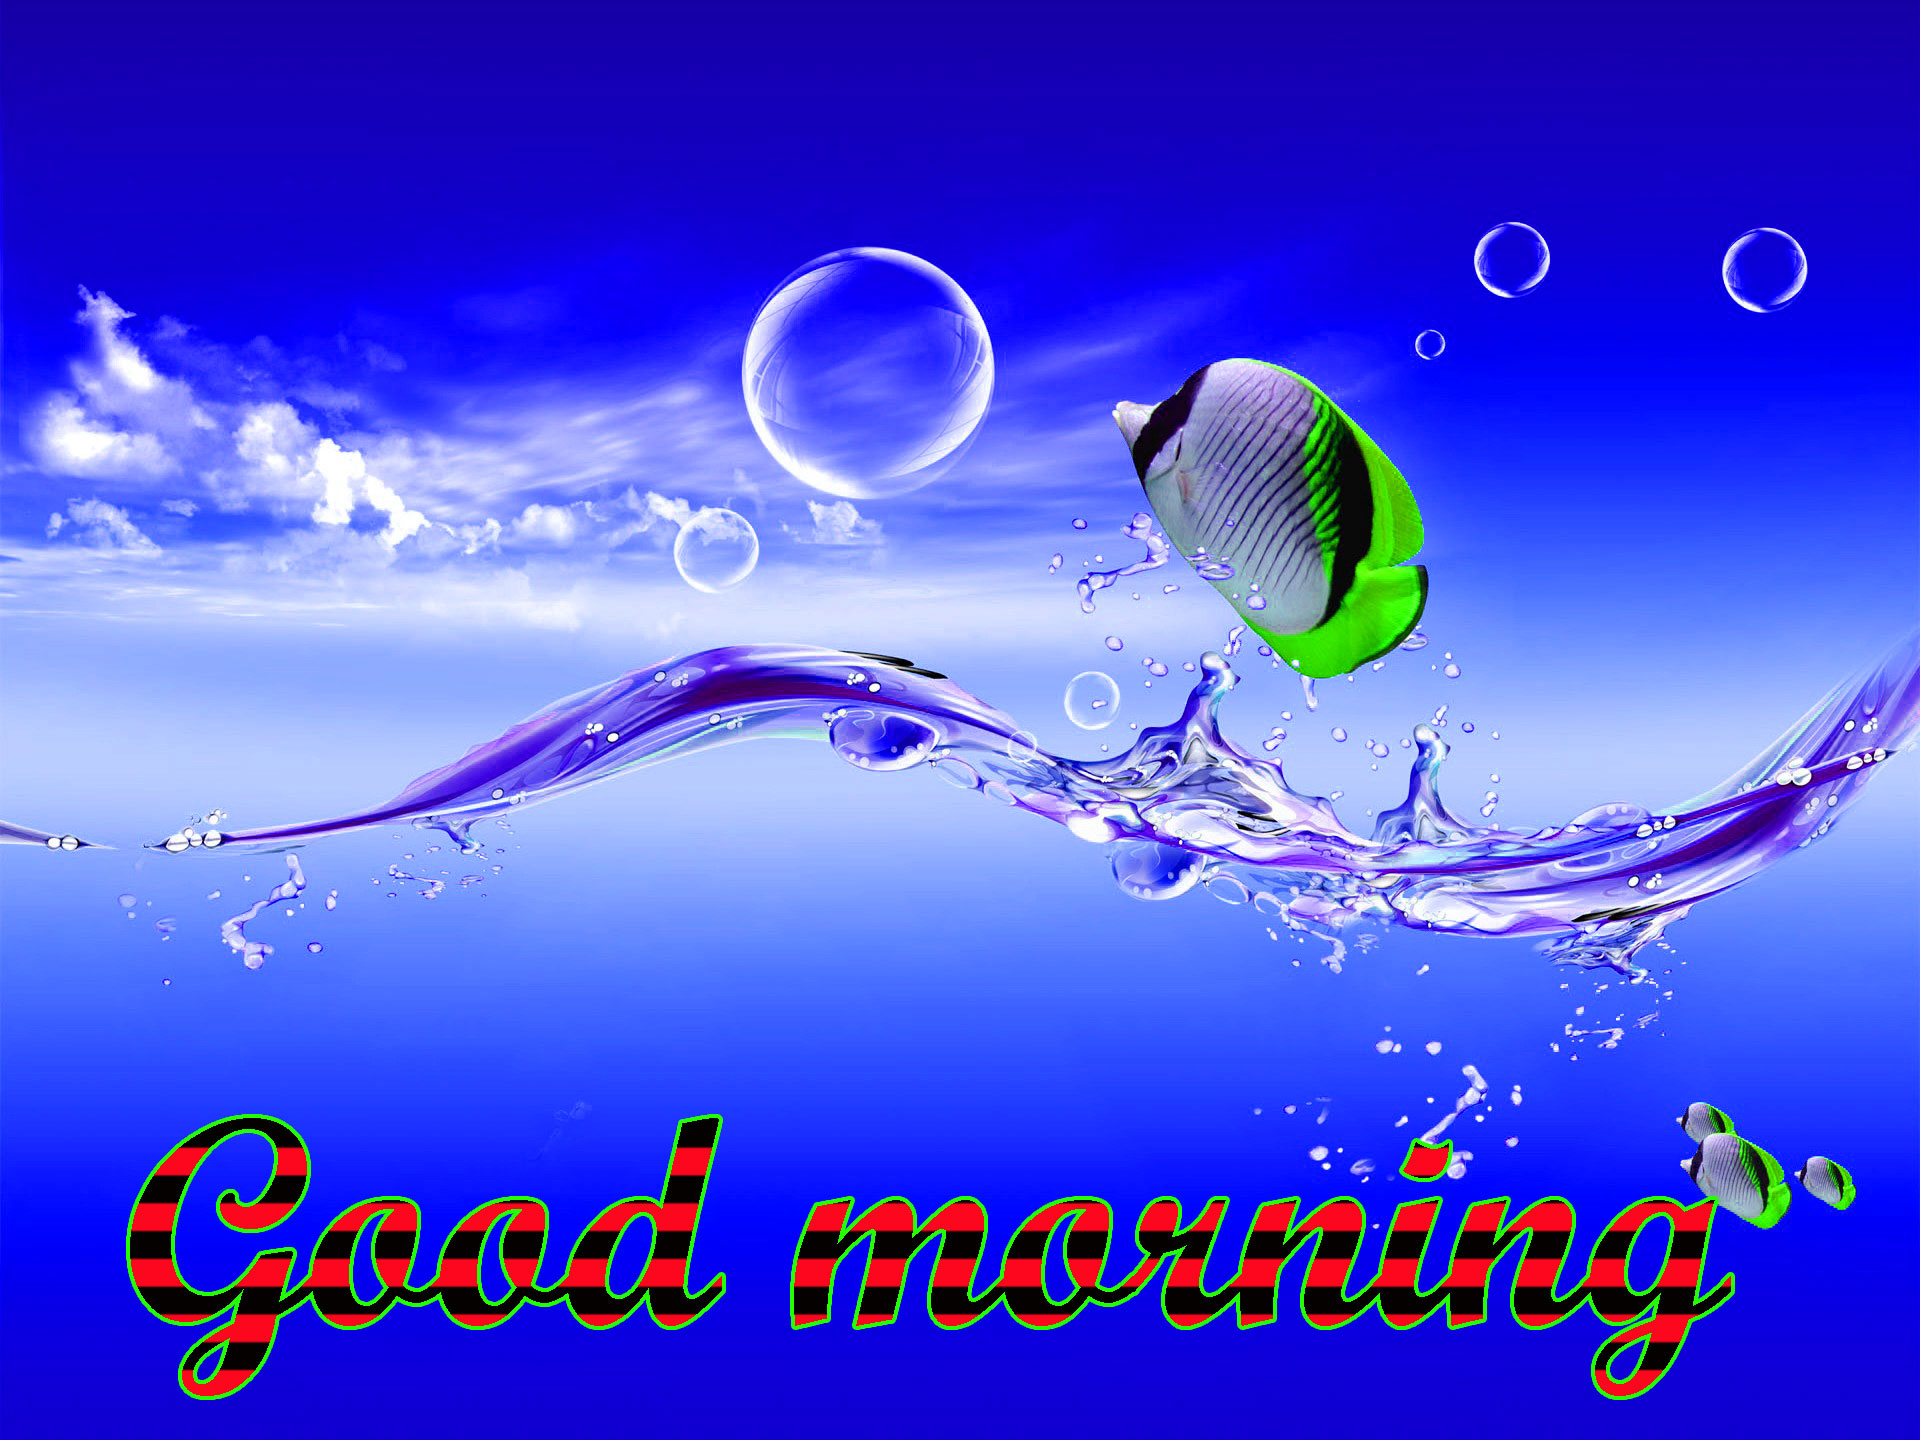 BEAUTIFUL 3D GOOD MORNING IMAGES WALLPAPER PICTURE DOWNLOAD